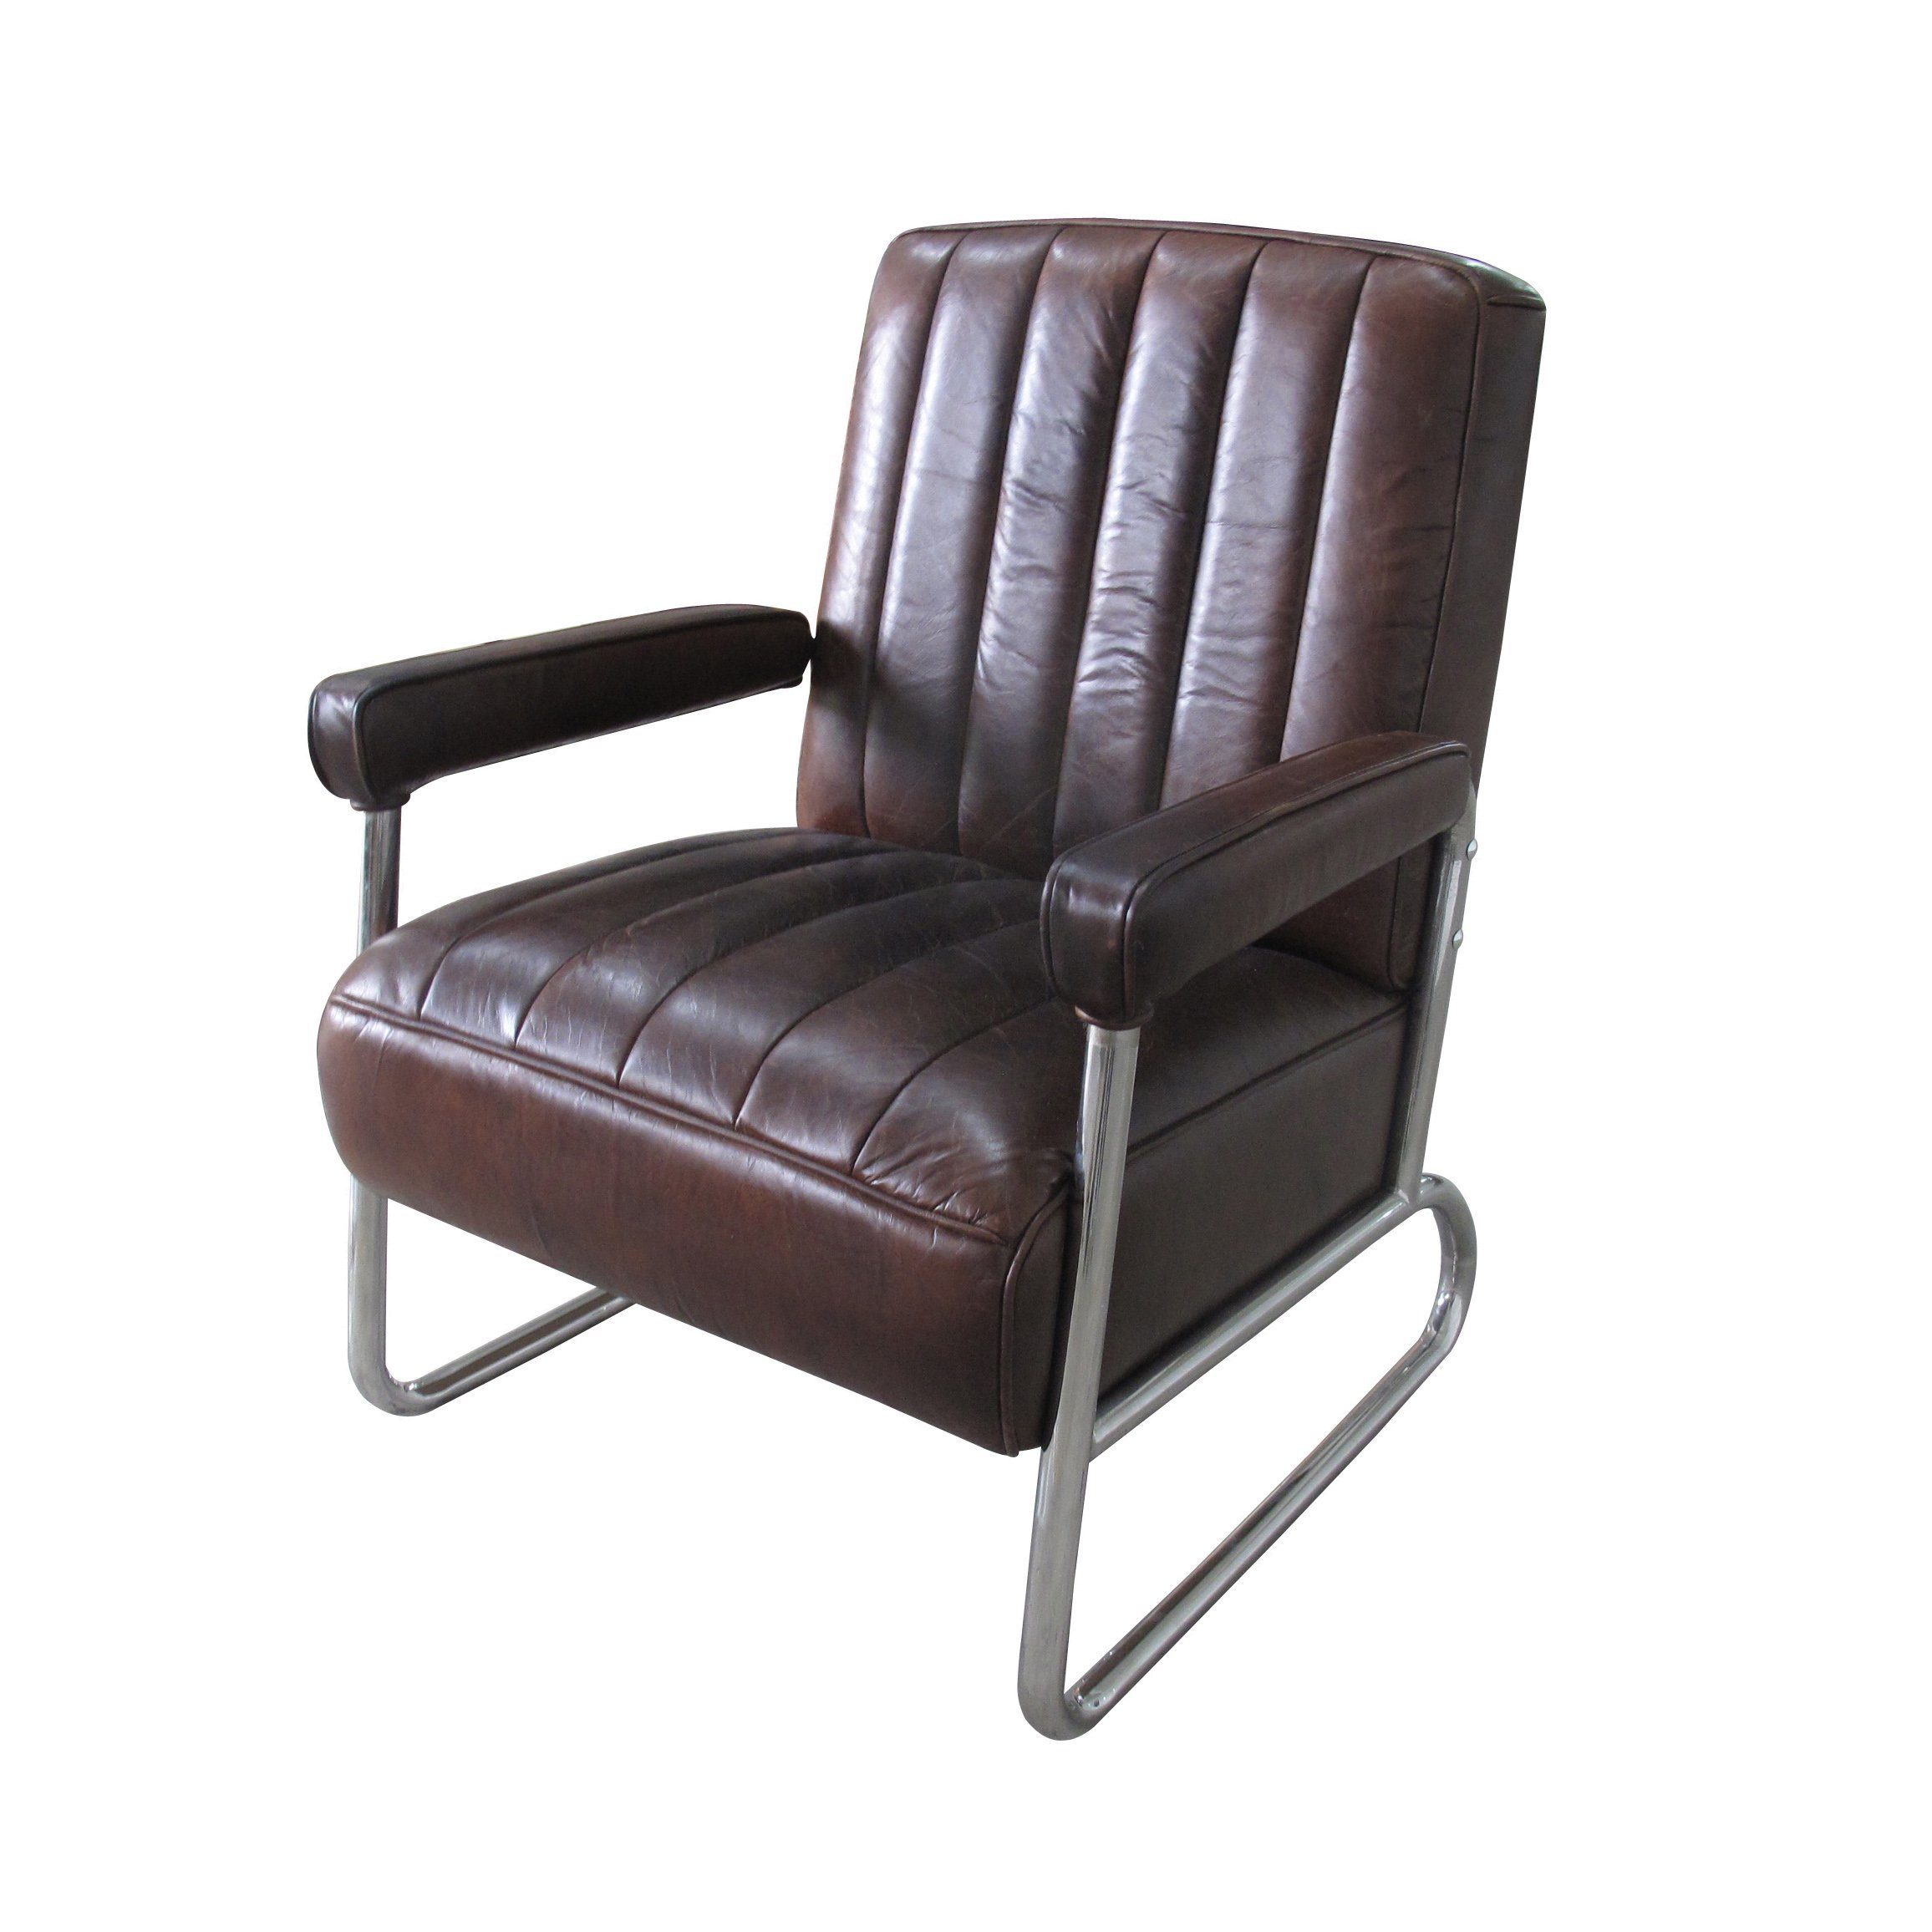 China Vintage Cow Leather Chair Industrial Furniture Loft Style Metal Living Room Chair Furniture Photos Pictures Made In China Com